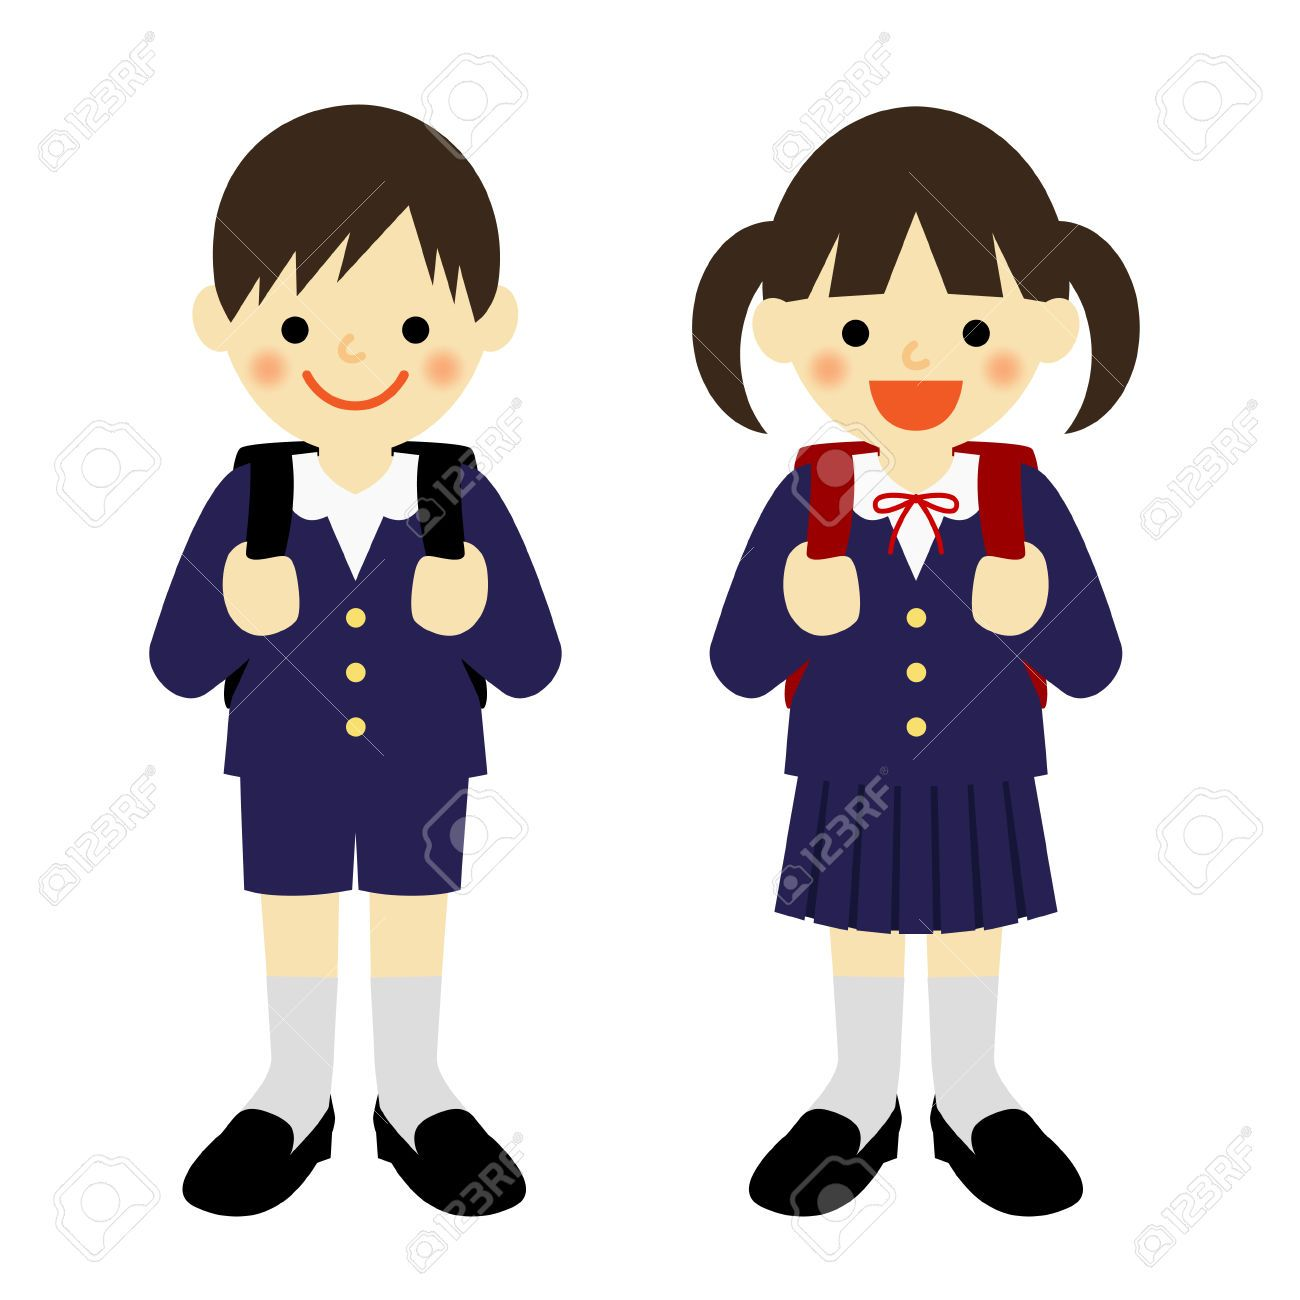 Free clipart school uniform 7 » Clipart Portal.